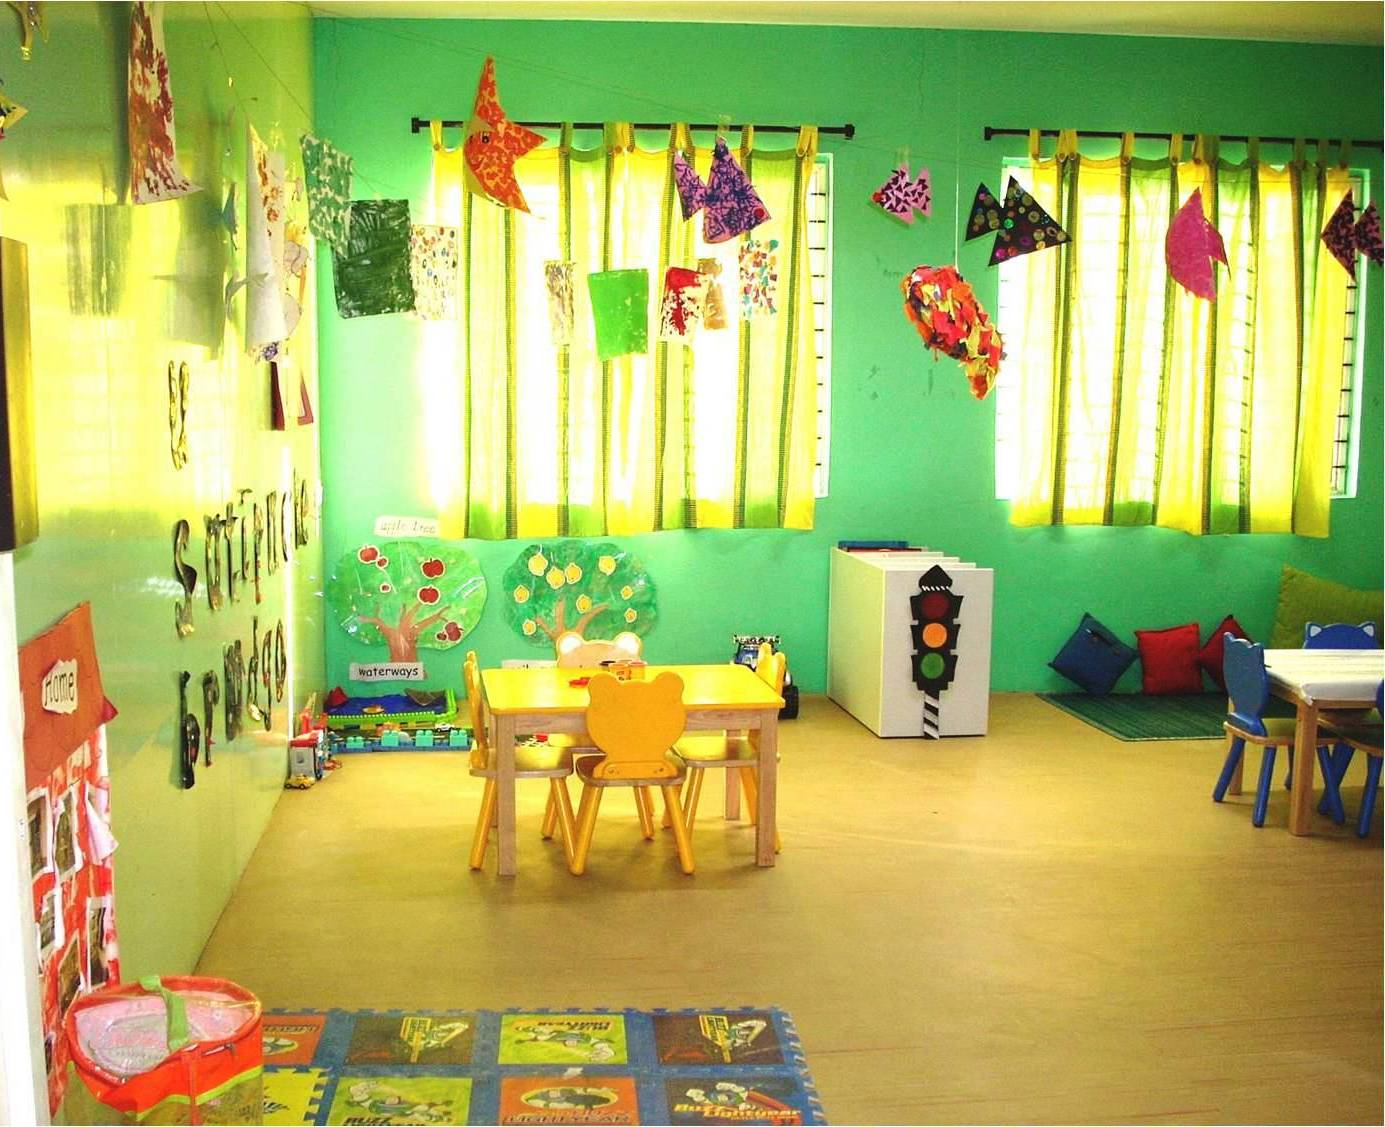 Classroom Ideas For Preschoolers ~ Setting up a preschool classroom allaboutpreschool